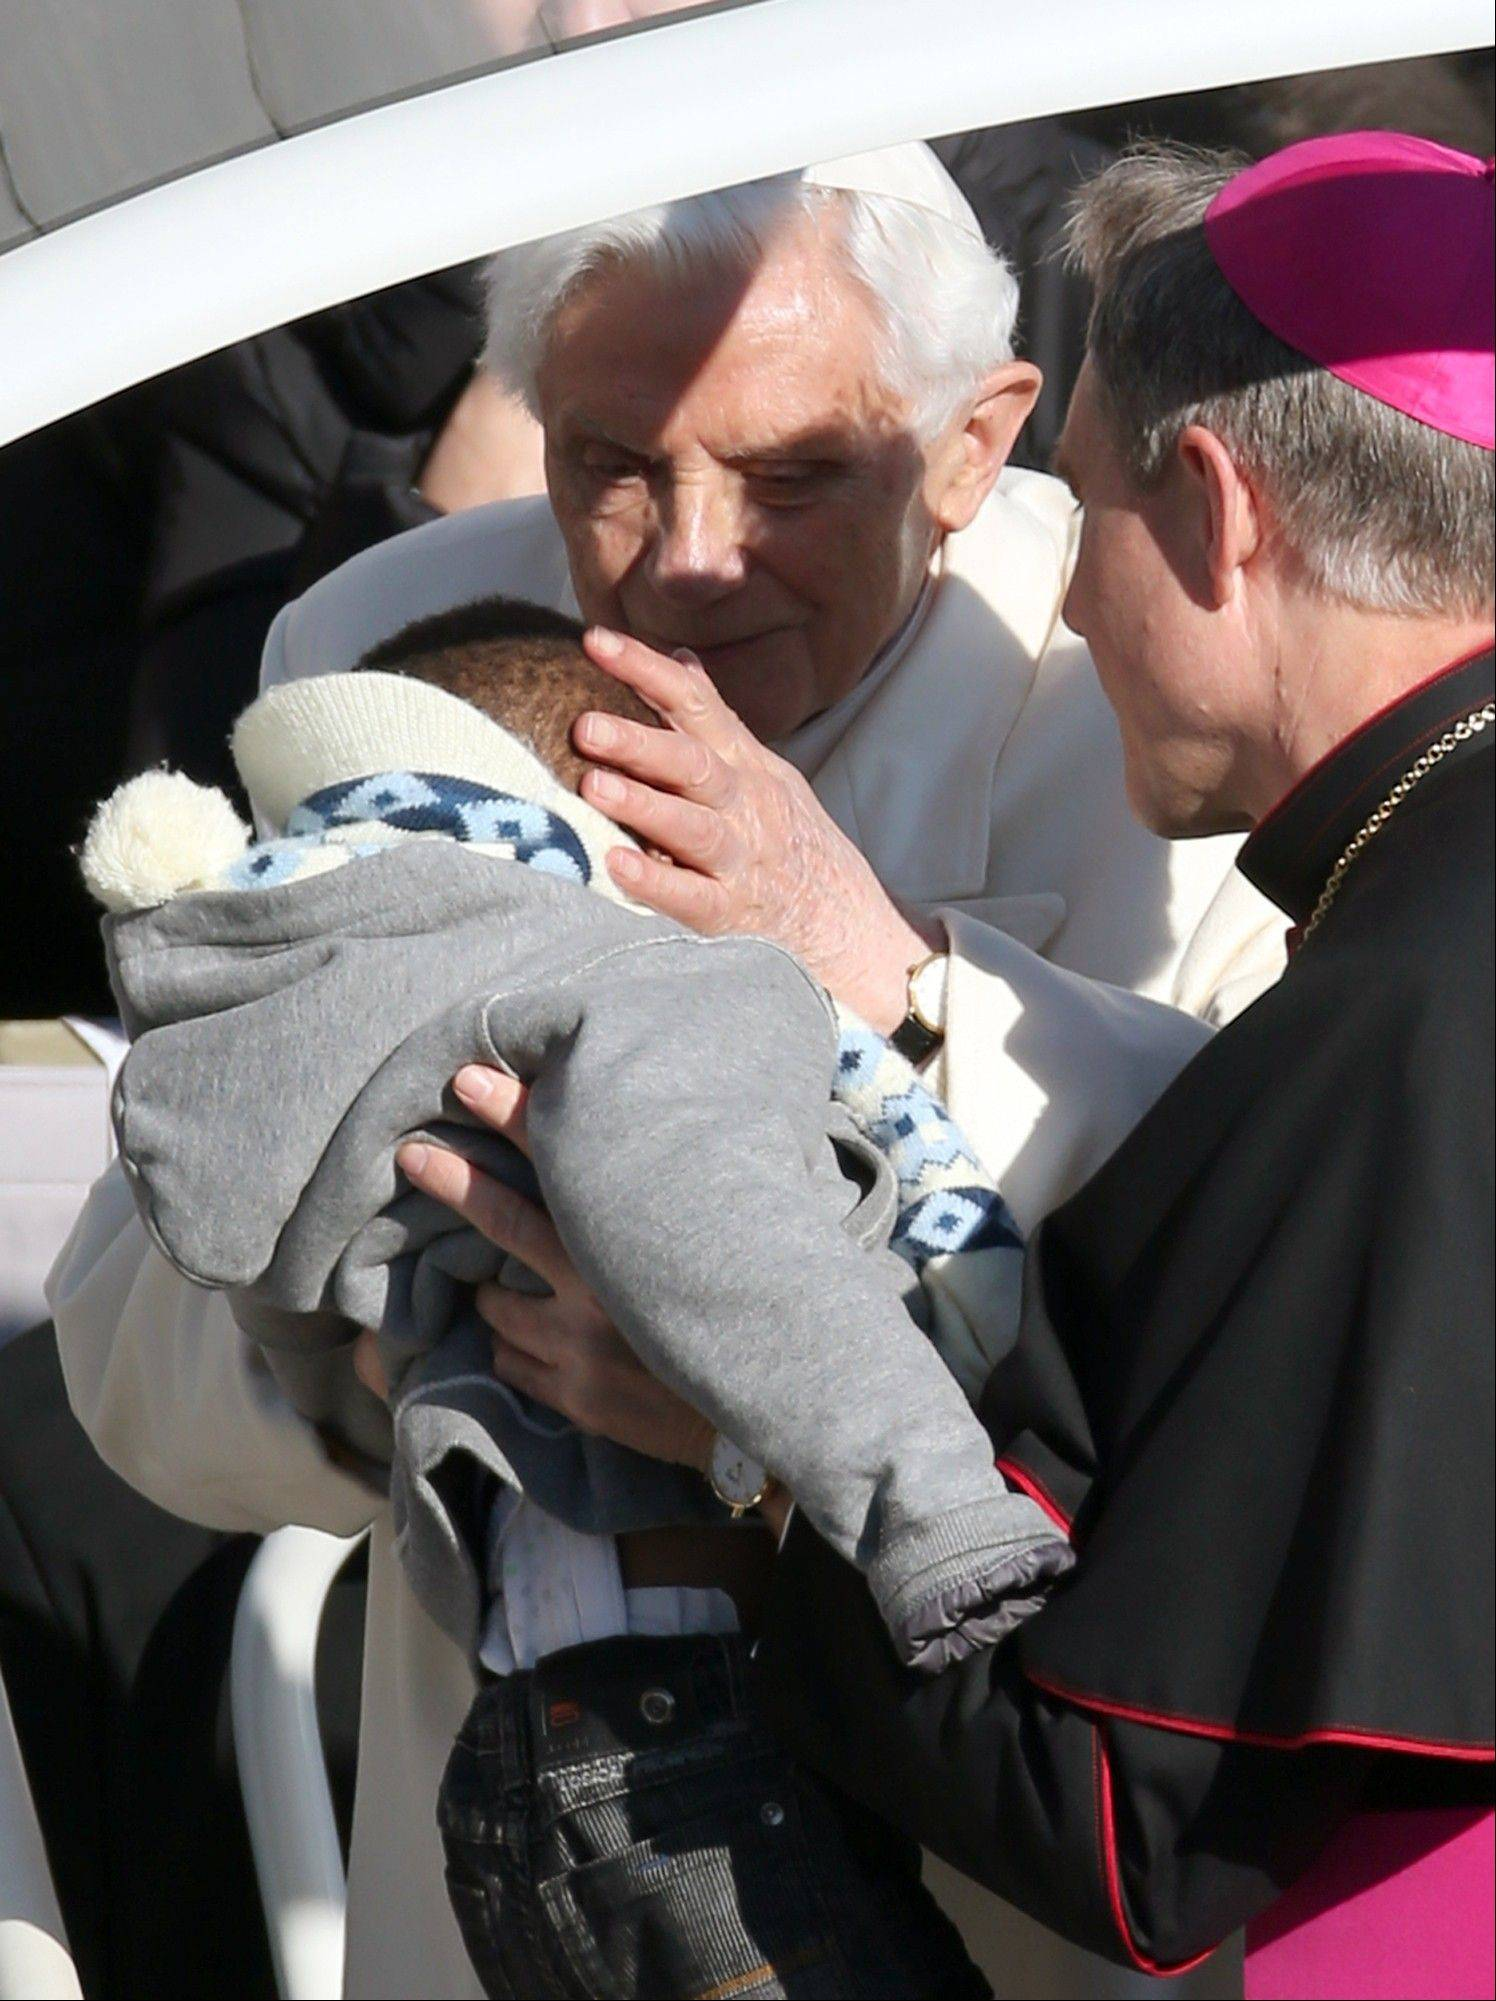 Pope Benedict XVI kisses a baby handed up to him by his secretary George Ganswein as he greets pilgrims in St. Peter's Square at the Vatican Wednesday, Feb. 27, 2013. Pope Benedict XVI greeted the Catholic masses in St. Peter's Square Wednesday for the last time before retiring, making several rounds of the square as crowds cheered wildly and stopping to kiss a half-dozen children brought up to him by his secretary.